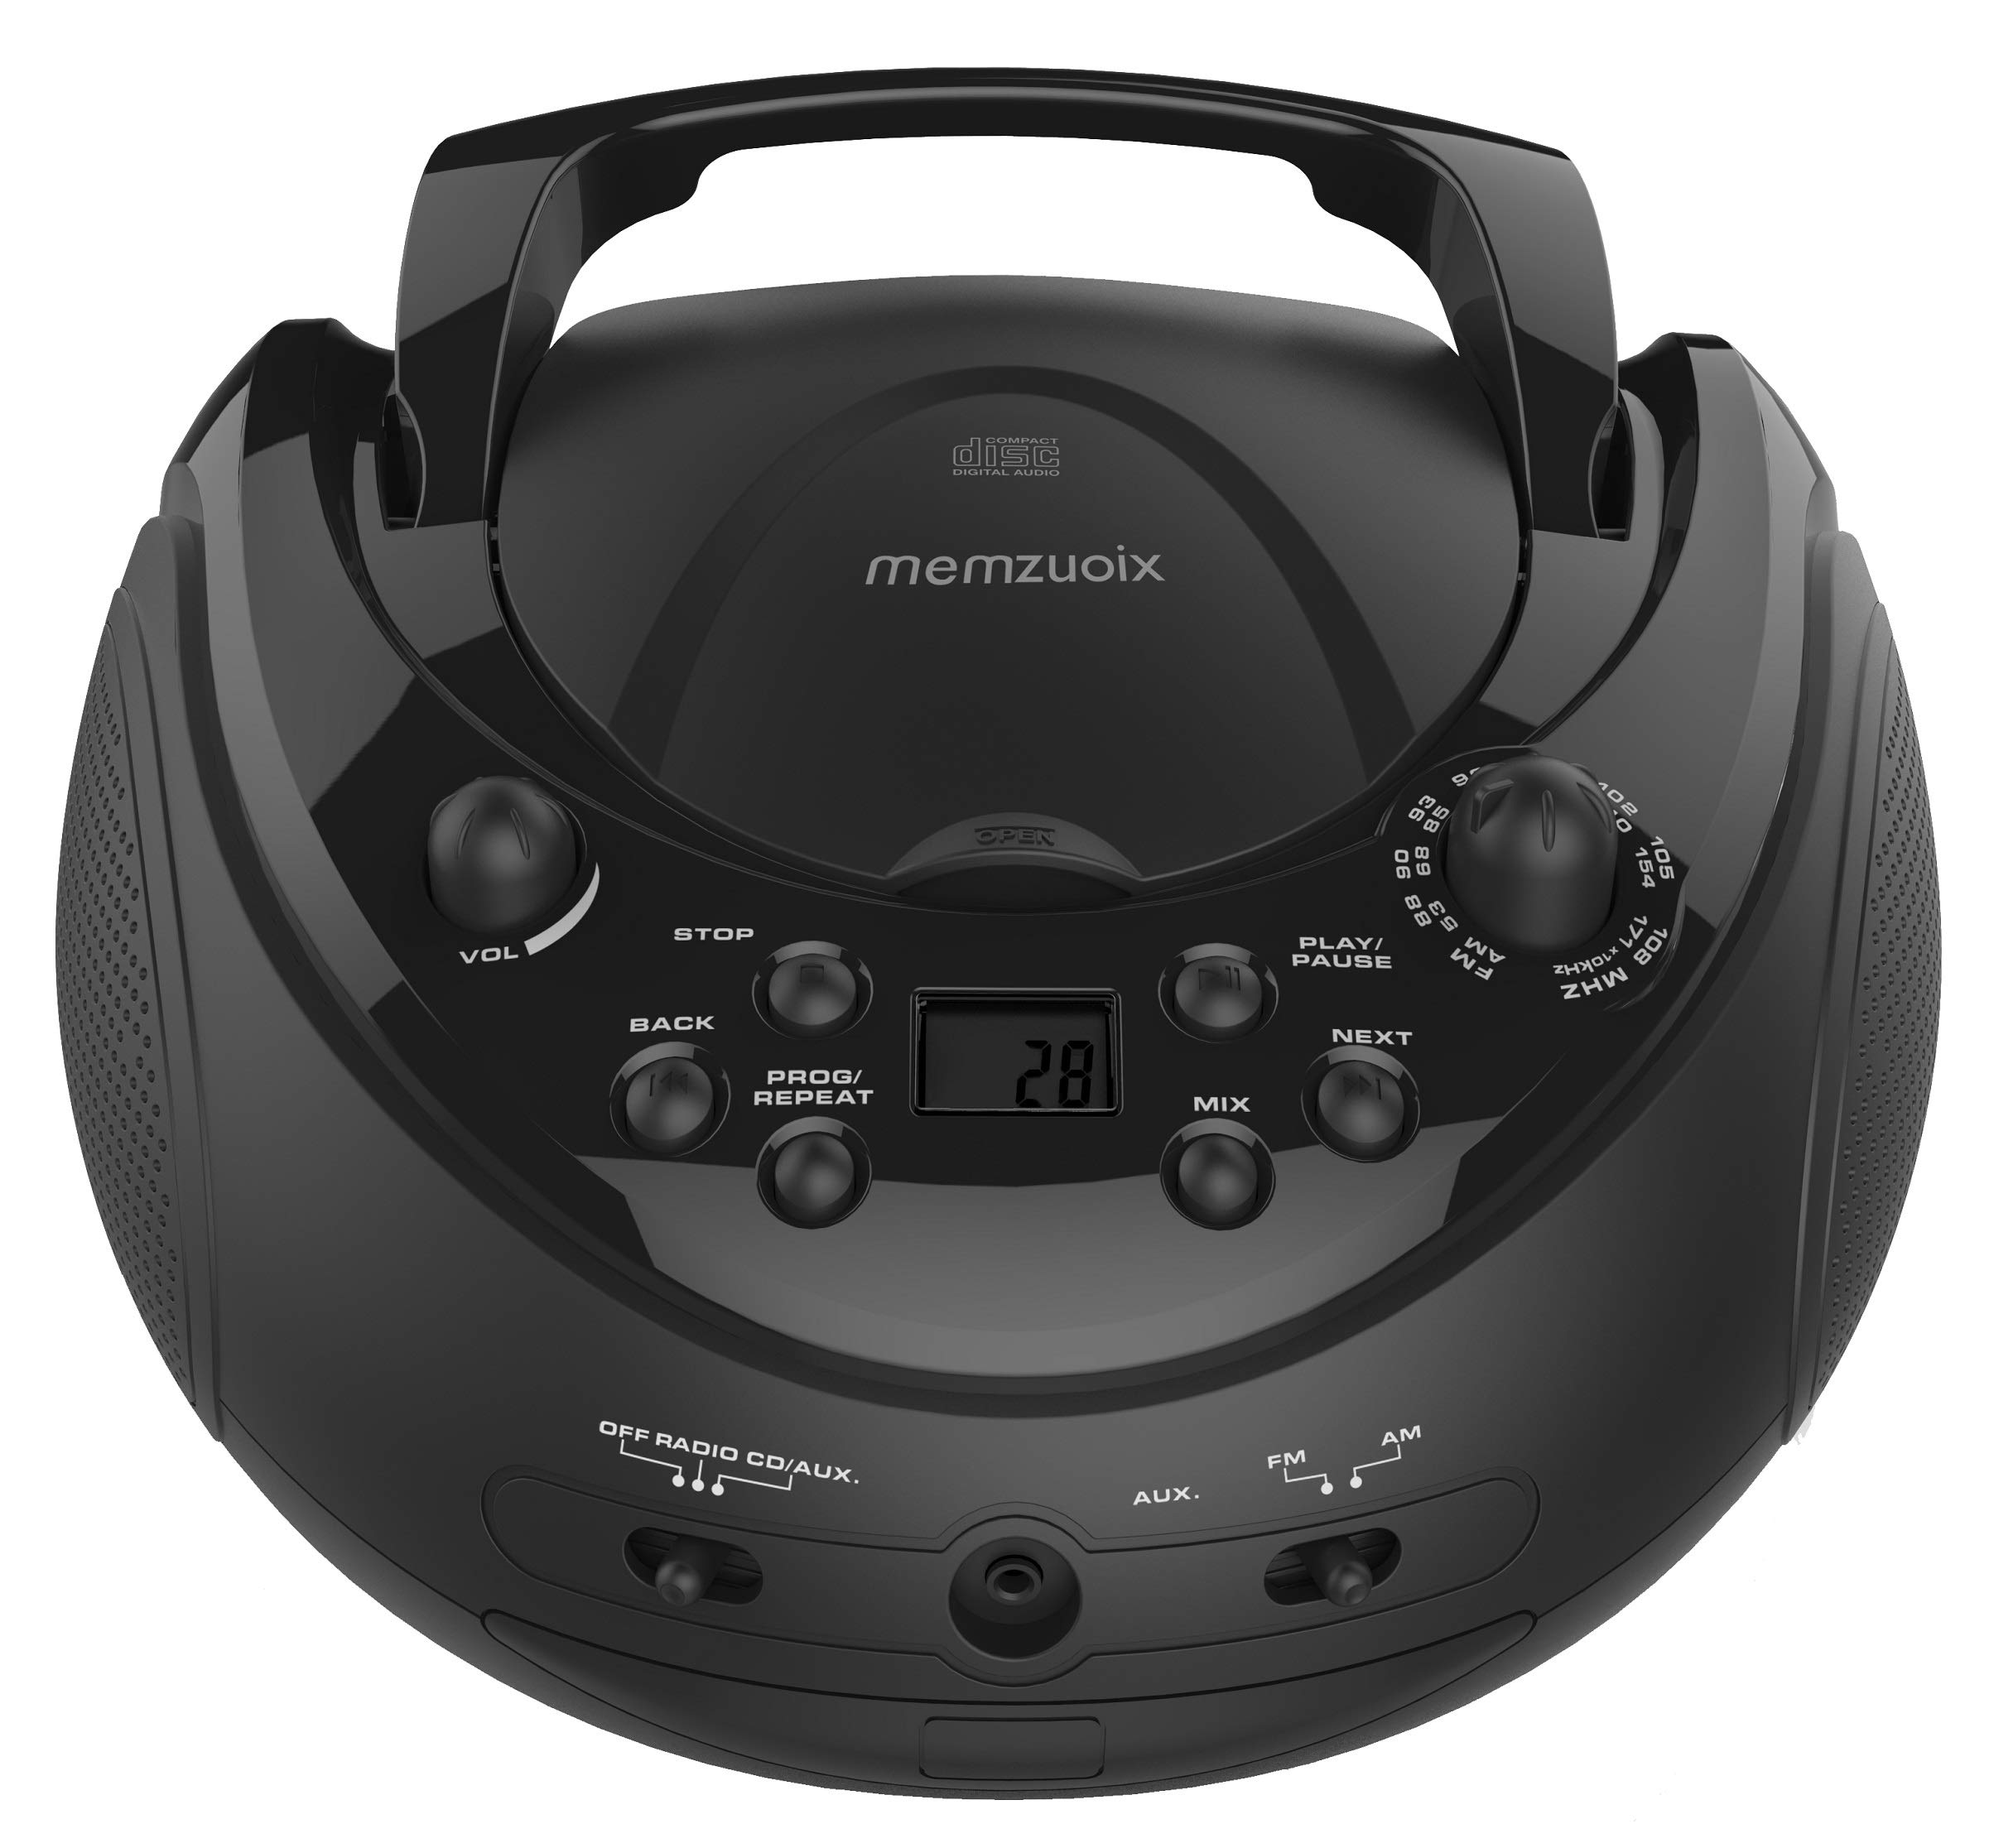 Memzuoix Portable CD Player CD Boombox with AM/FM Radio and 3.50mm Line Input Jack, Easy to Use, Compact Size for Family